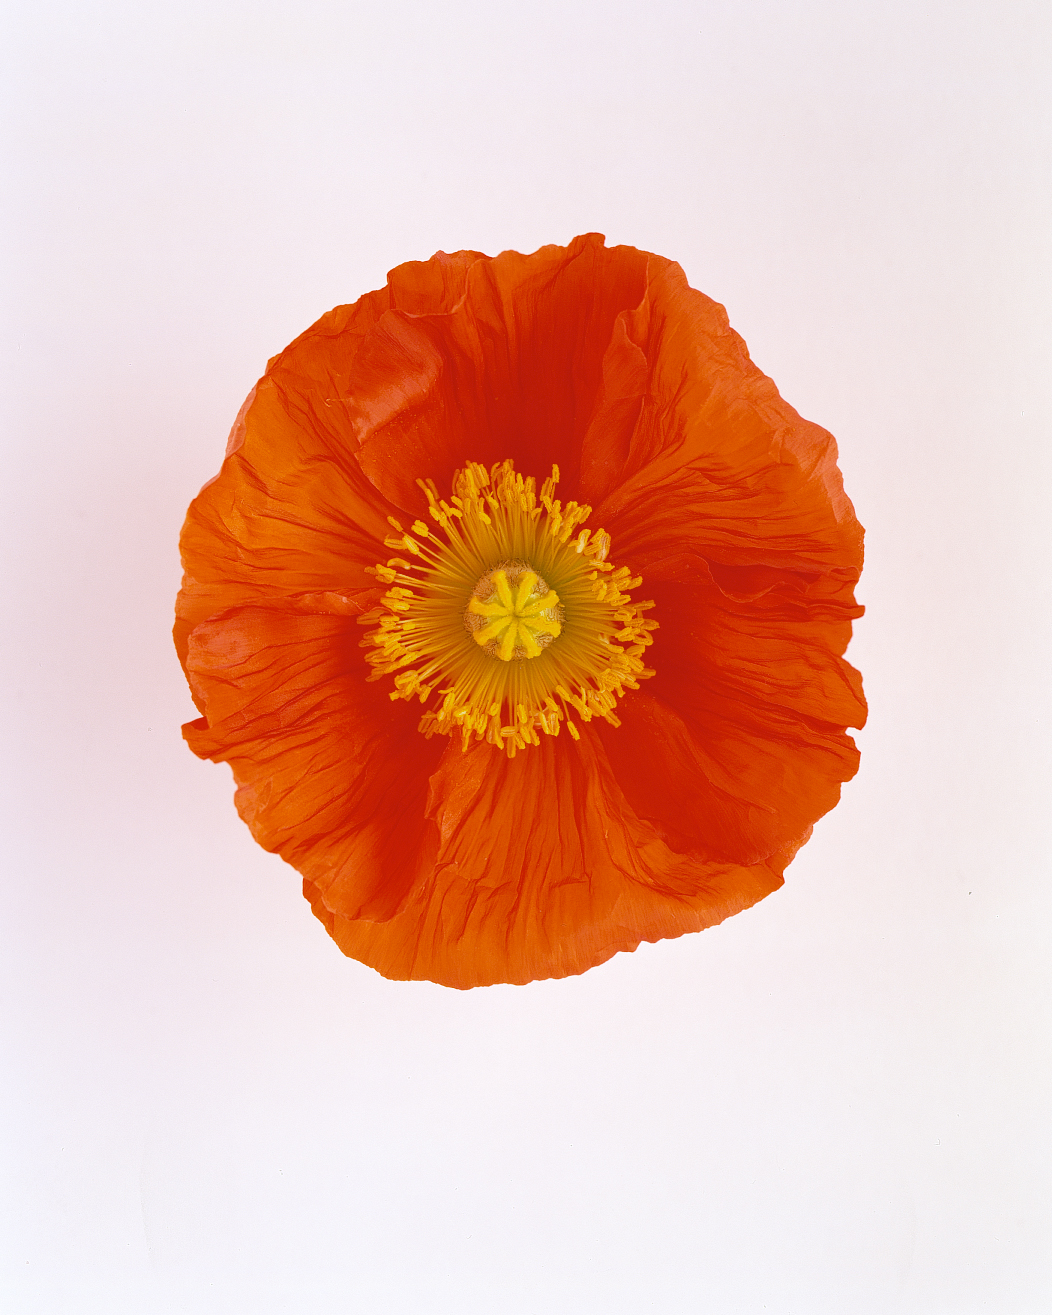 flower-glossary-poppy-happy-or-simona-red-a98432-0415.jpg